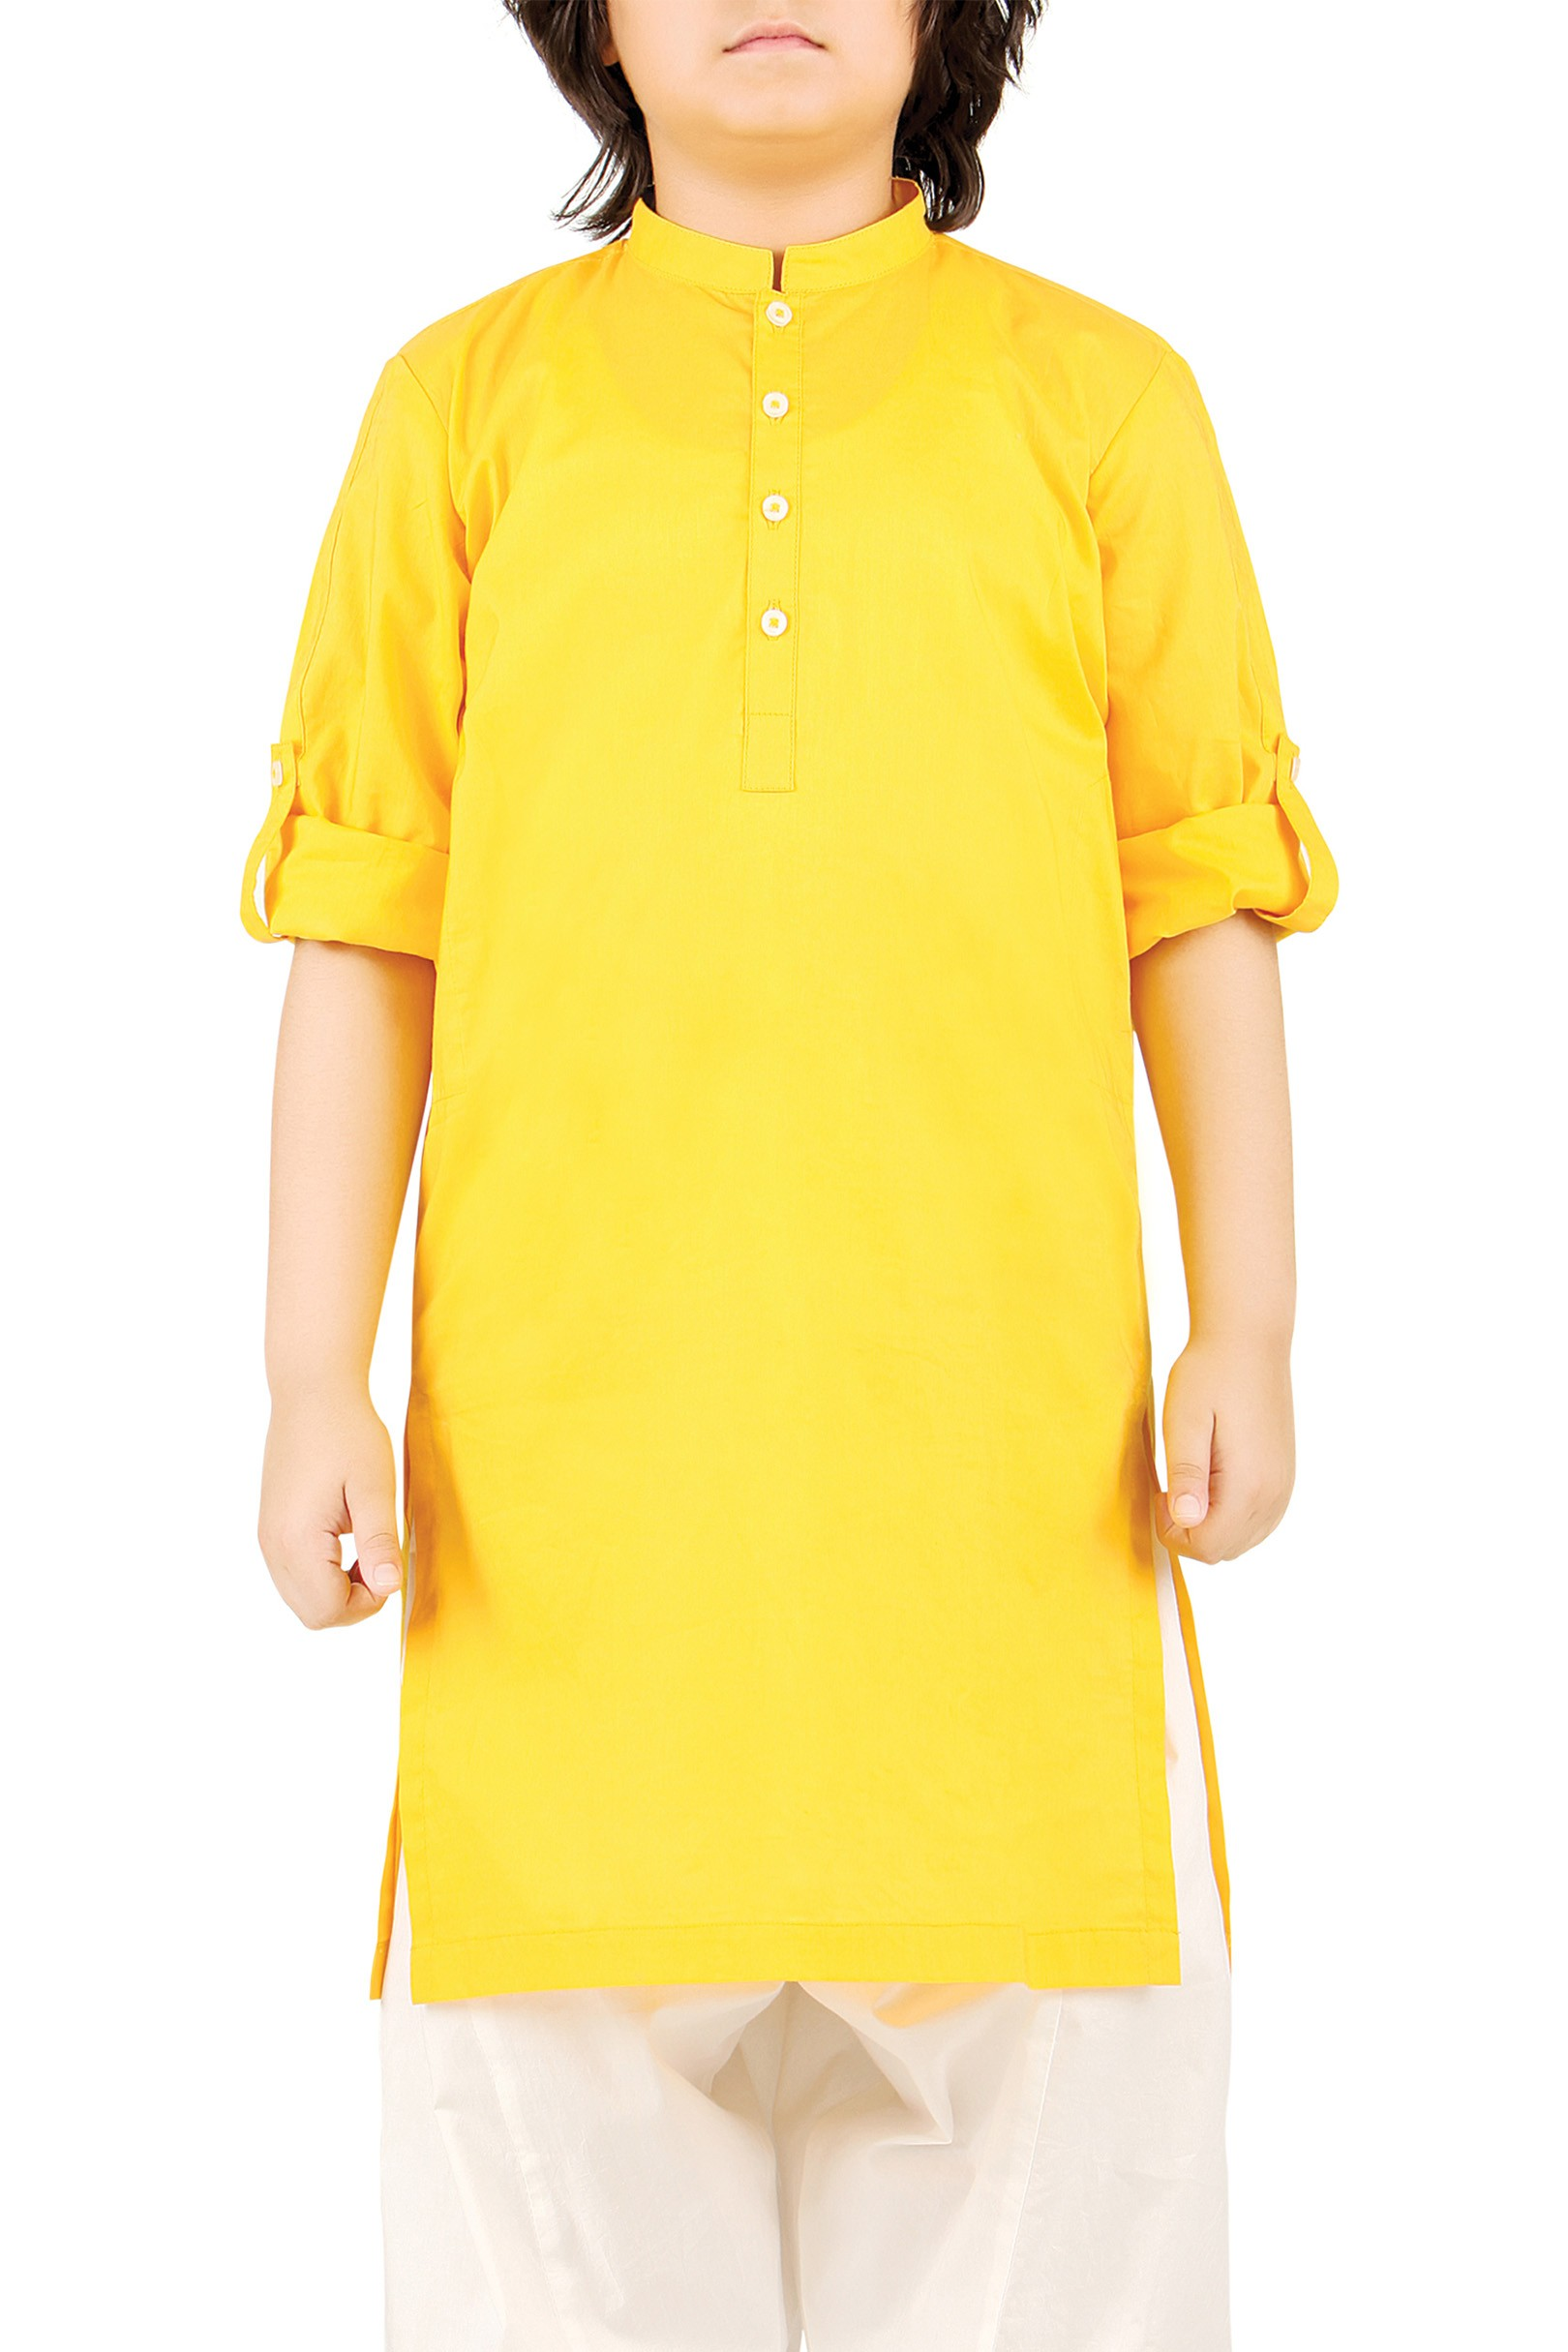 Shahnameh-Eid-Collection-for-Kids (4)